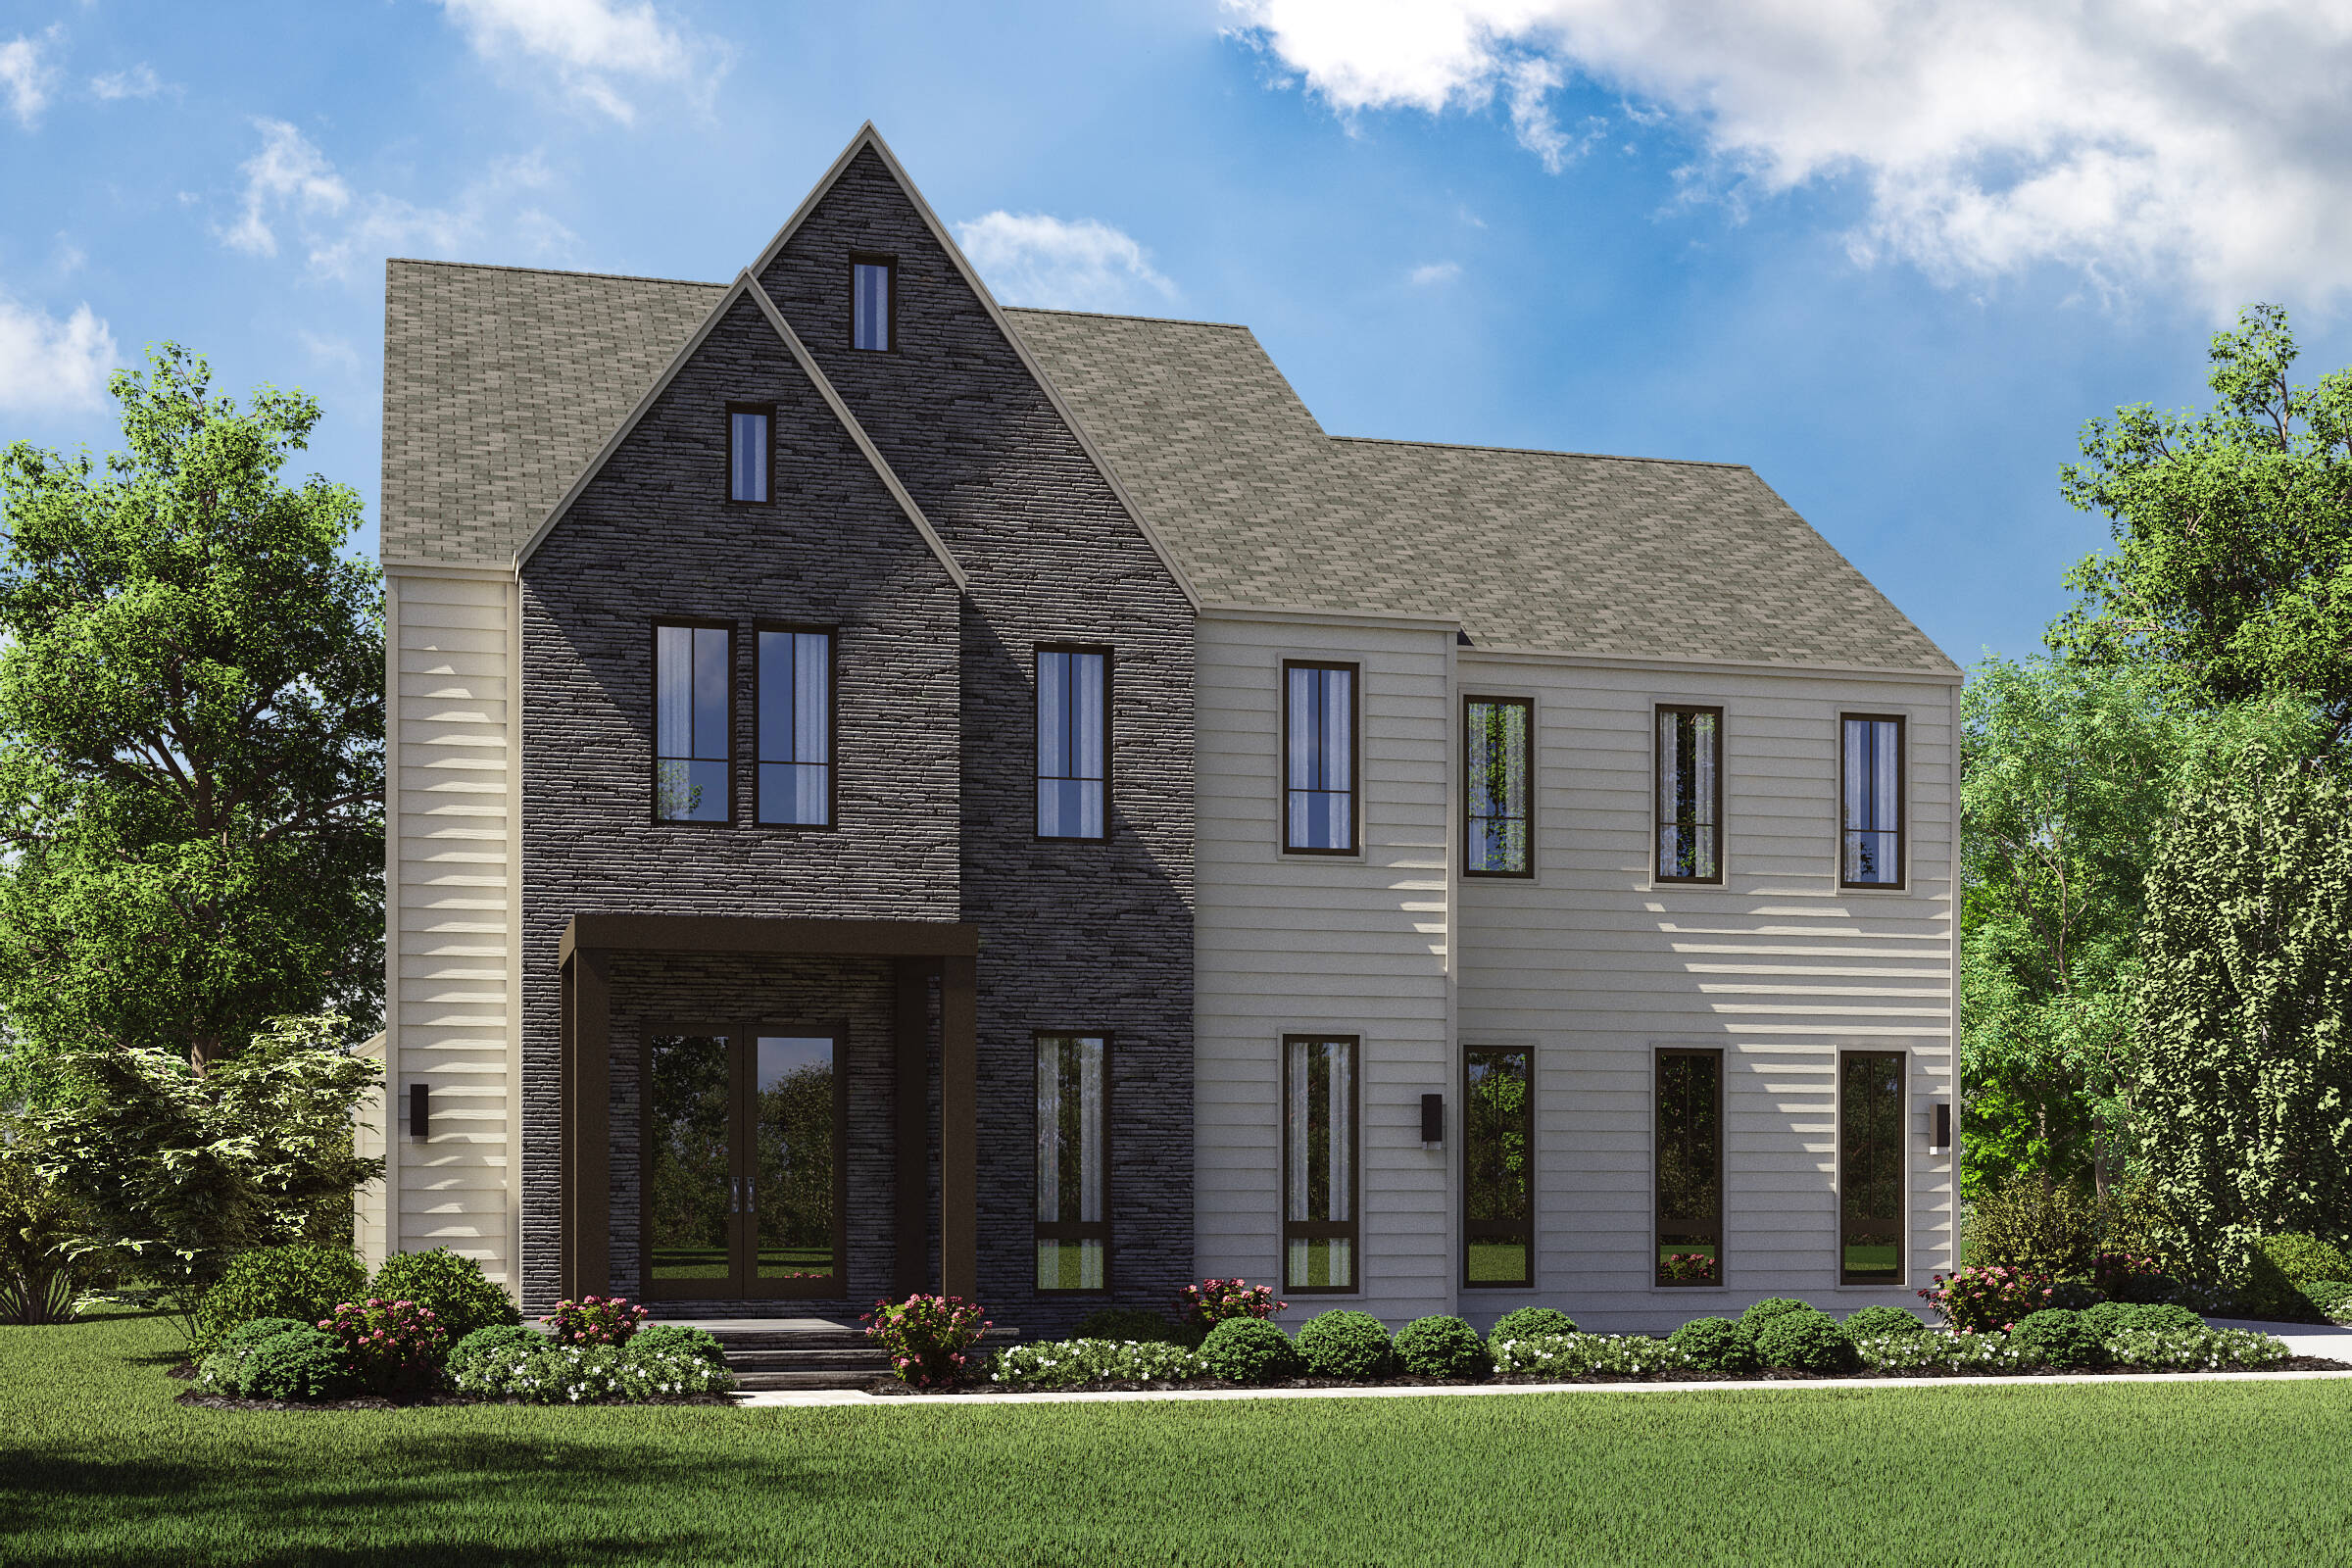 de woudaap jt new home at windmill series in virginia